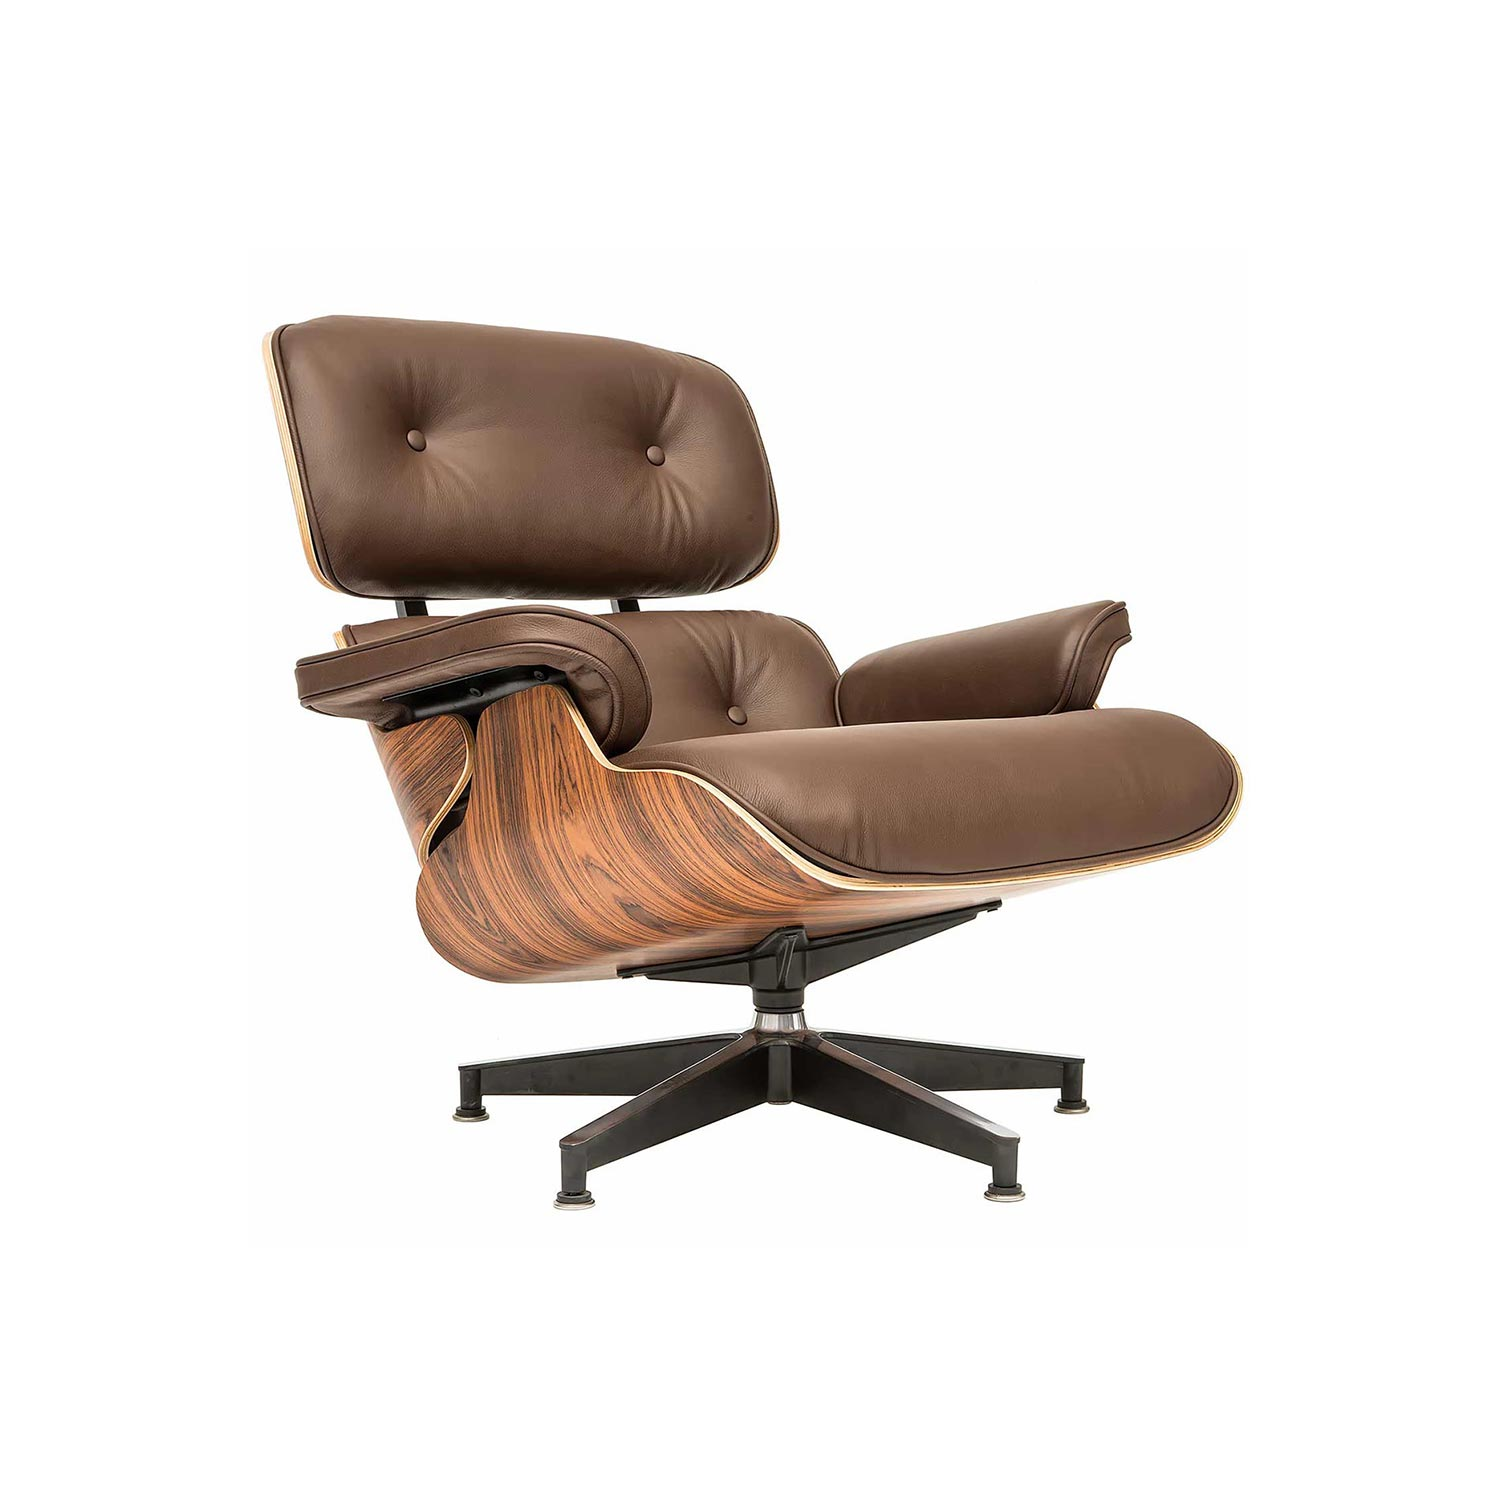 Eames Inspired Lounge Chair A Steelform Design Classic